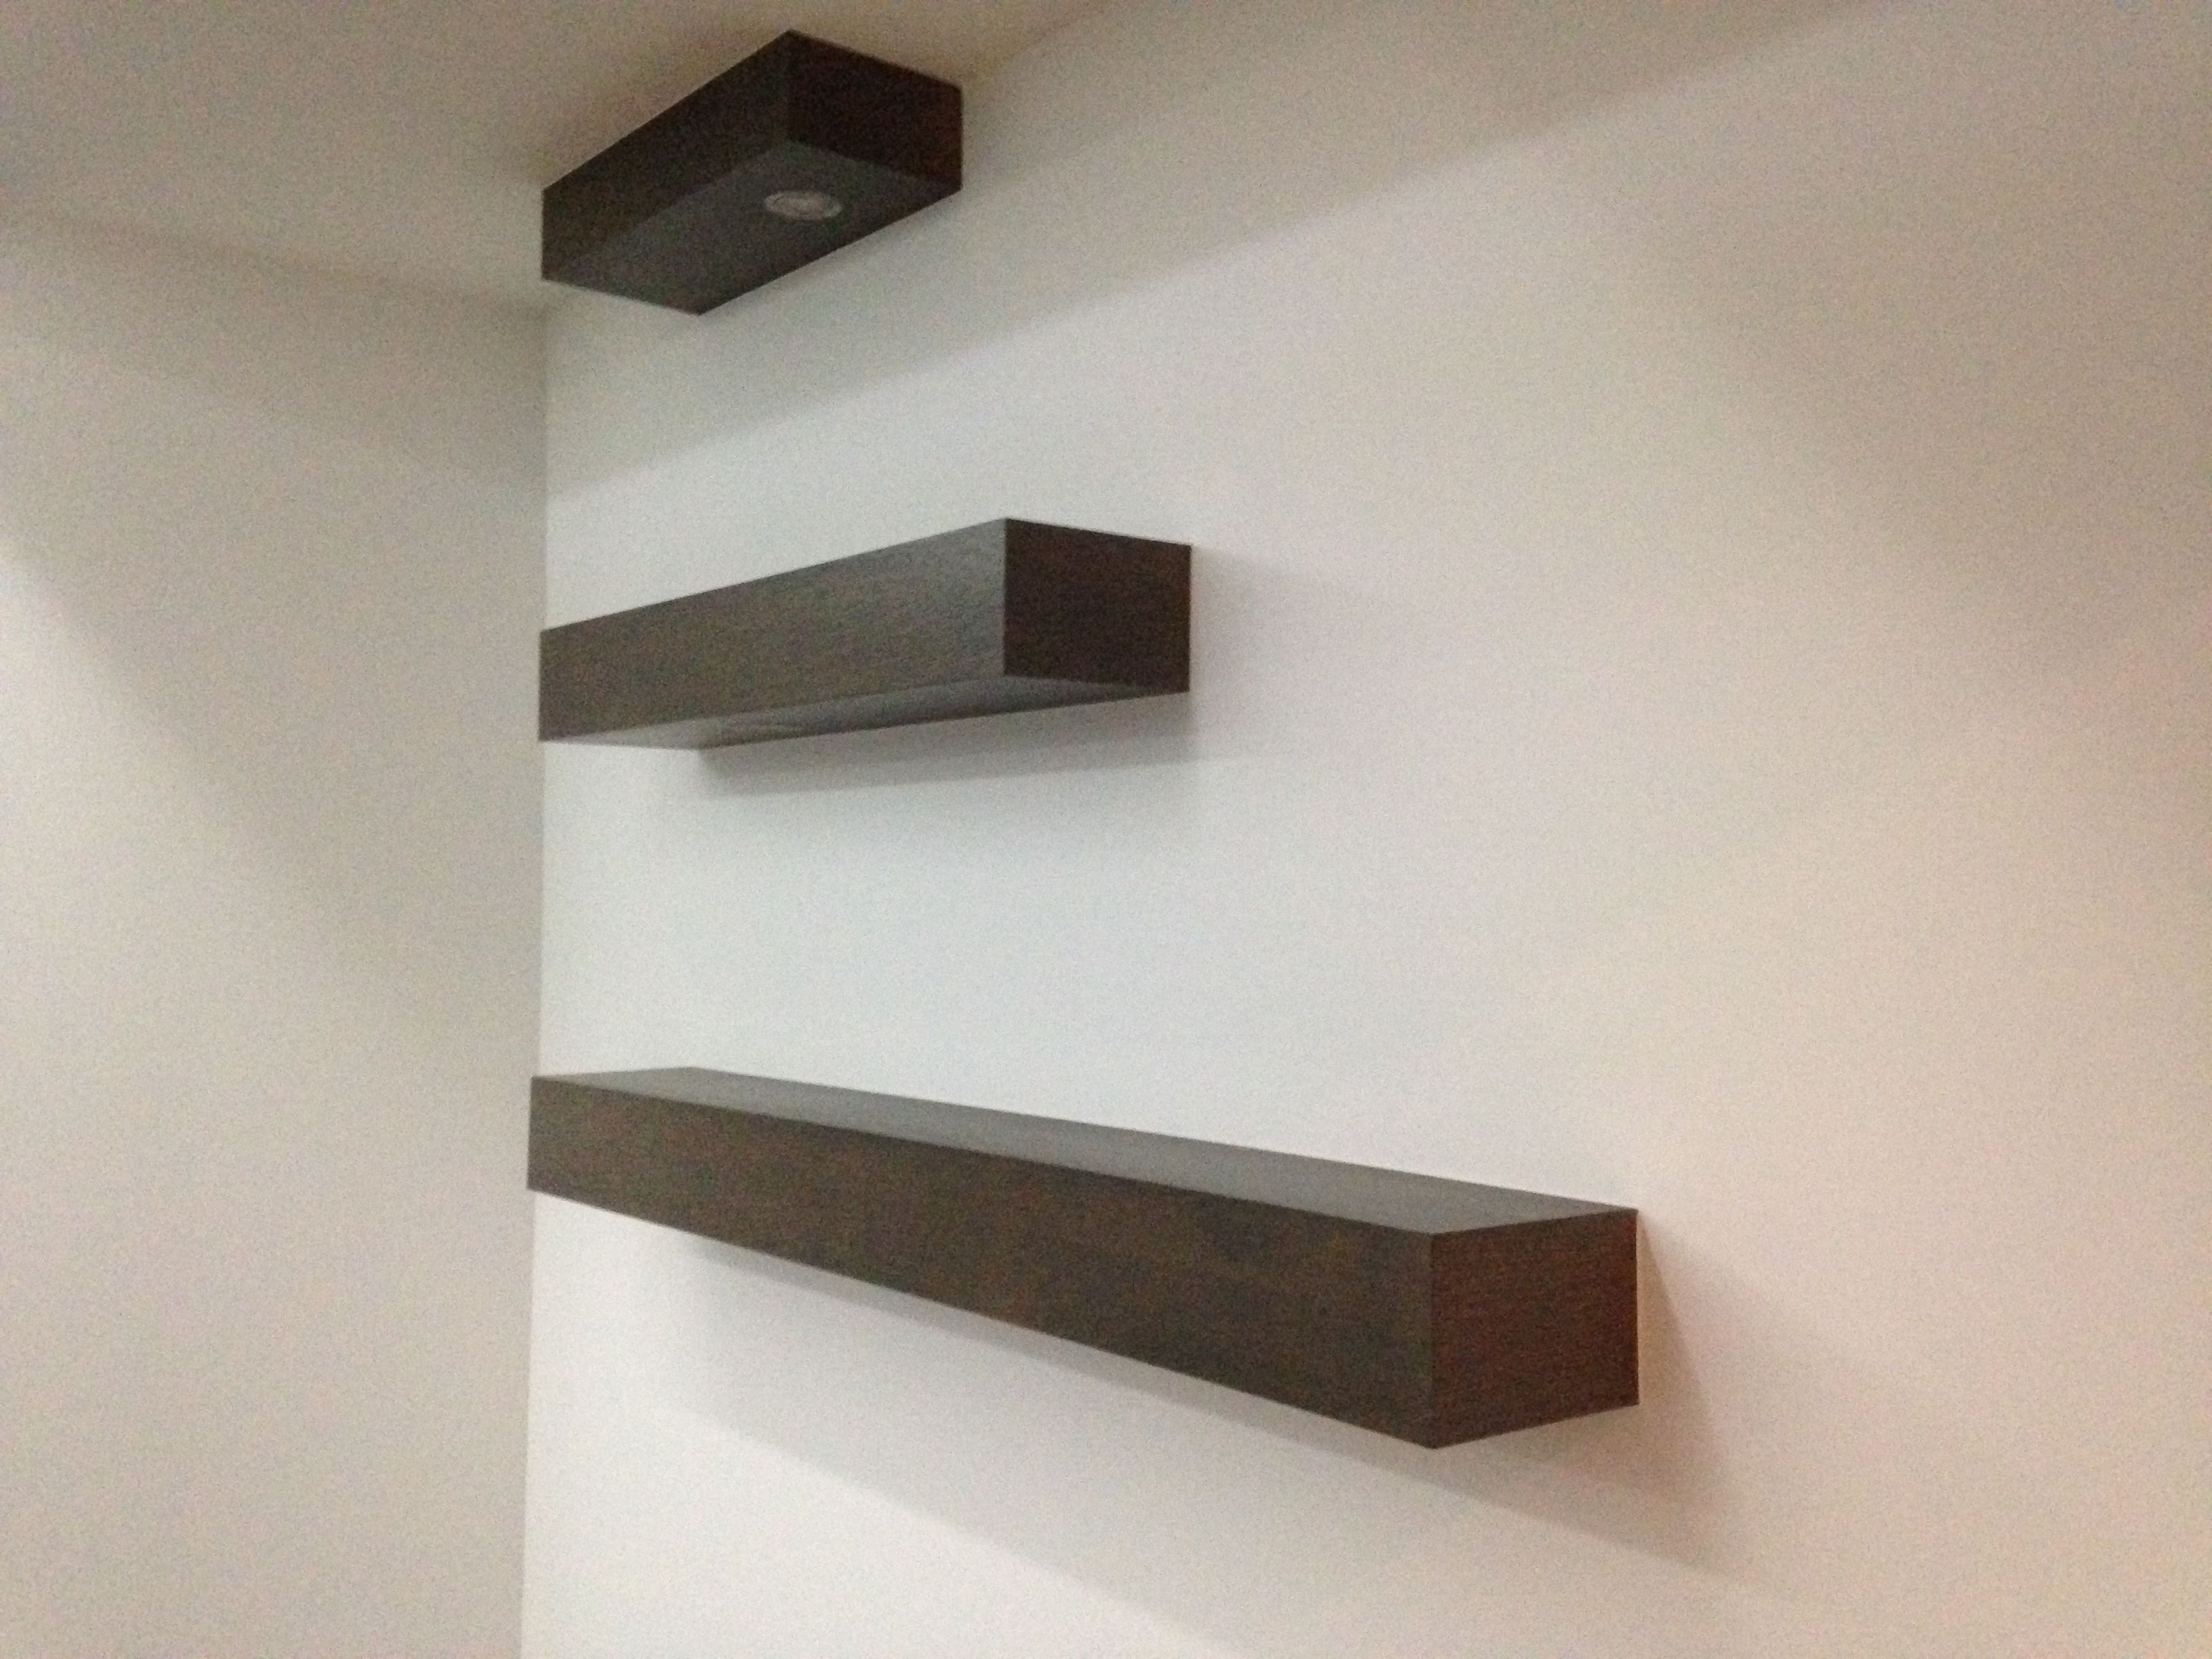 floating shelves made out of plywood around 2x4 s nailed to the